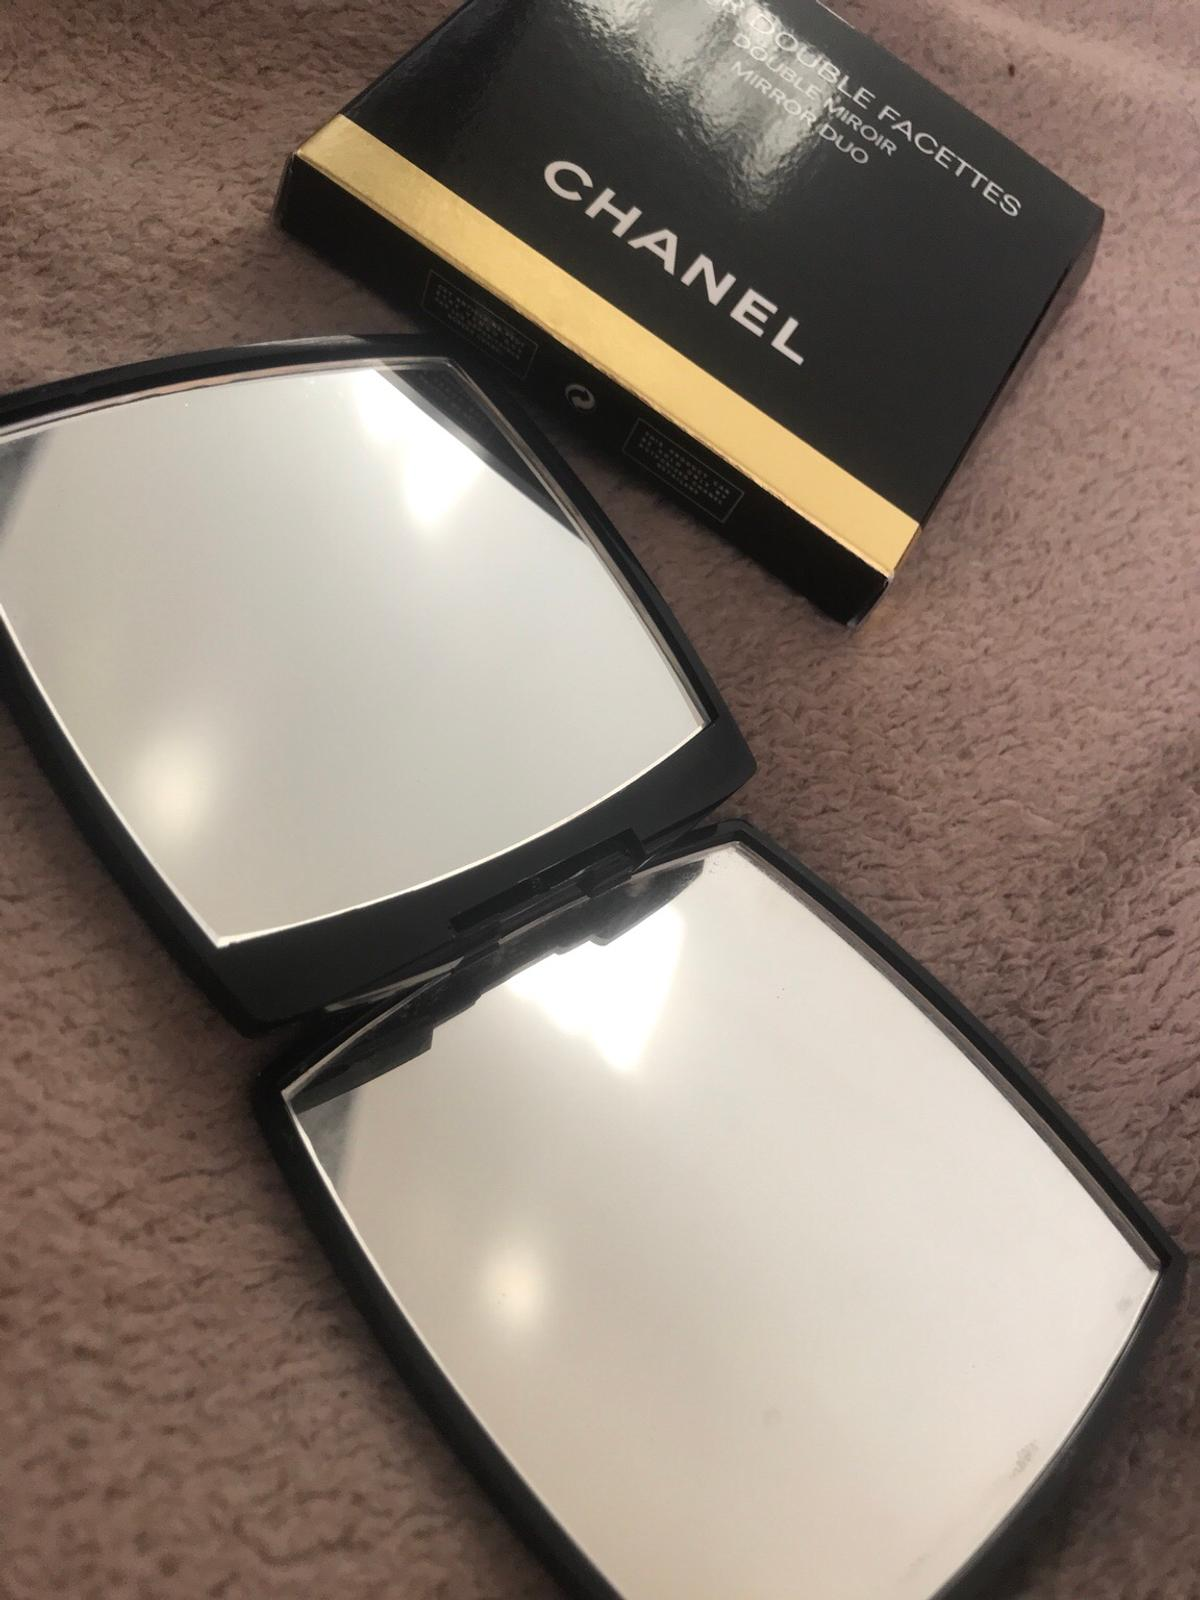 Chanel Duo Compact Mirror In Wv12 Walsall For 18 00 For Sale Shpock